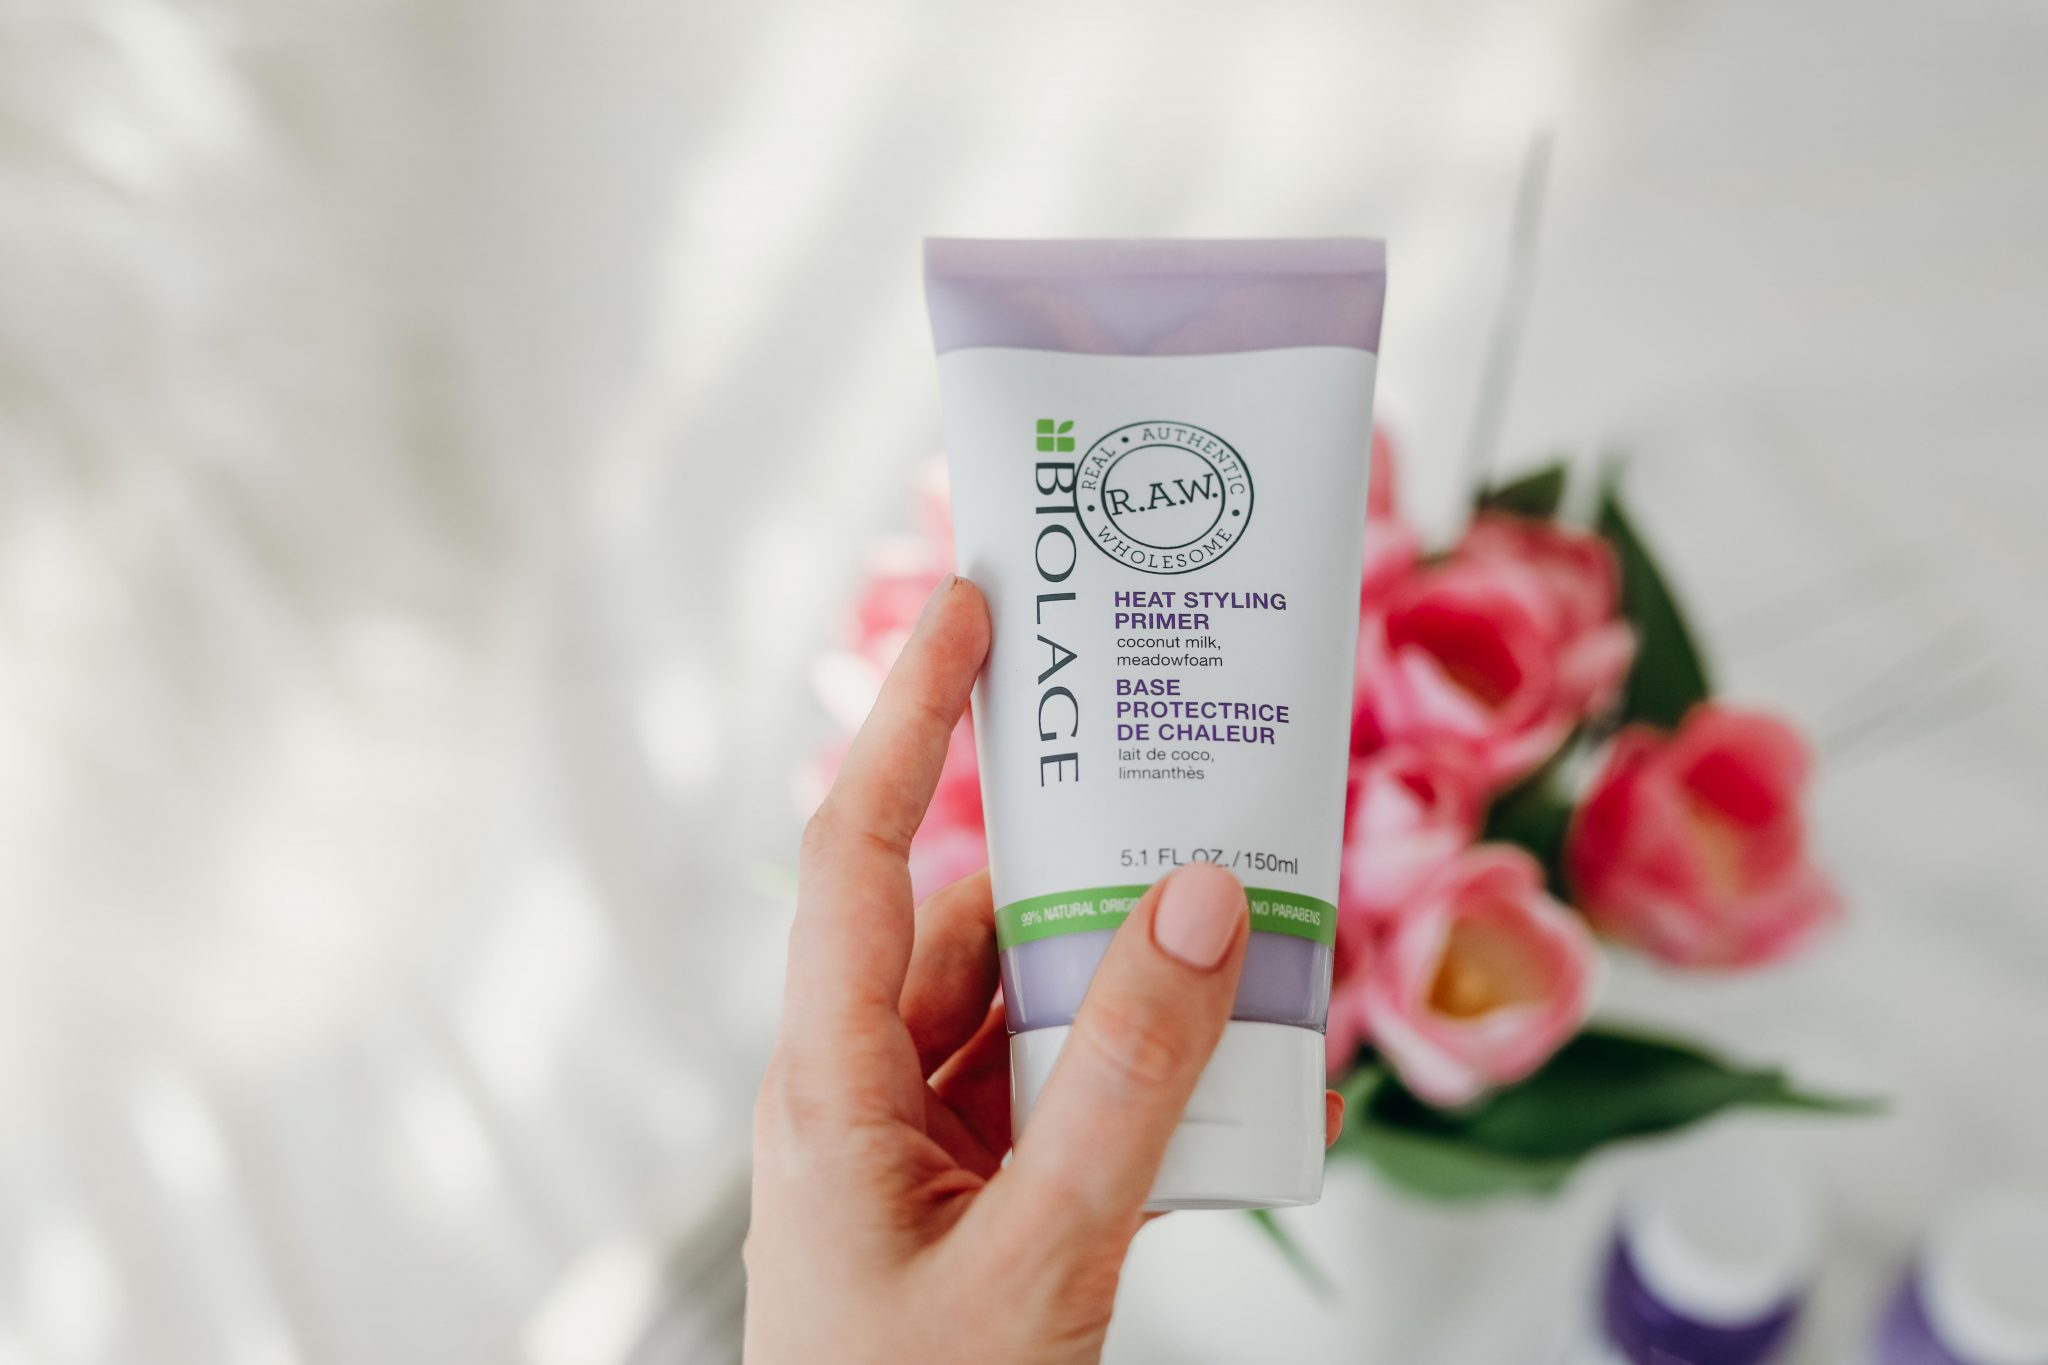 biolage raw hair care (2 of 3)